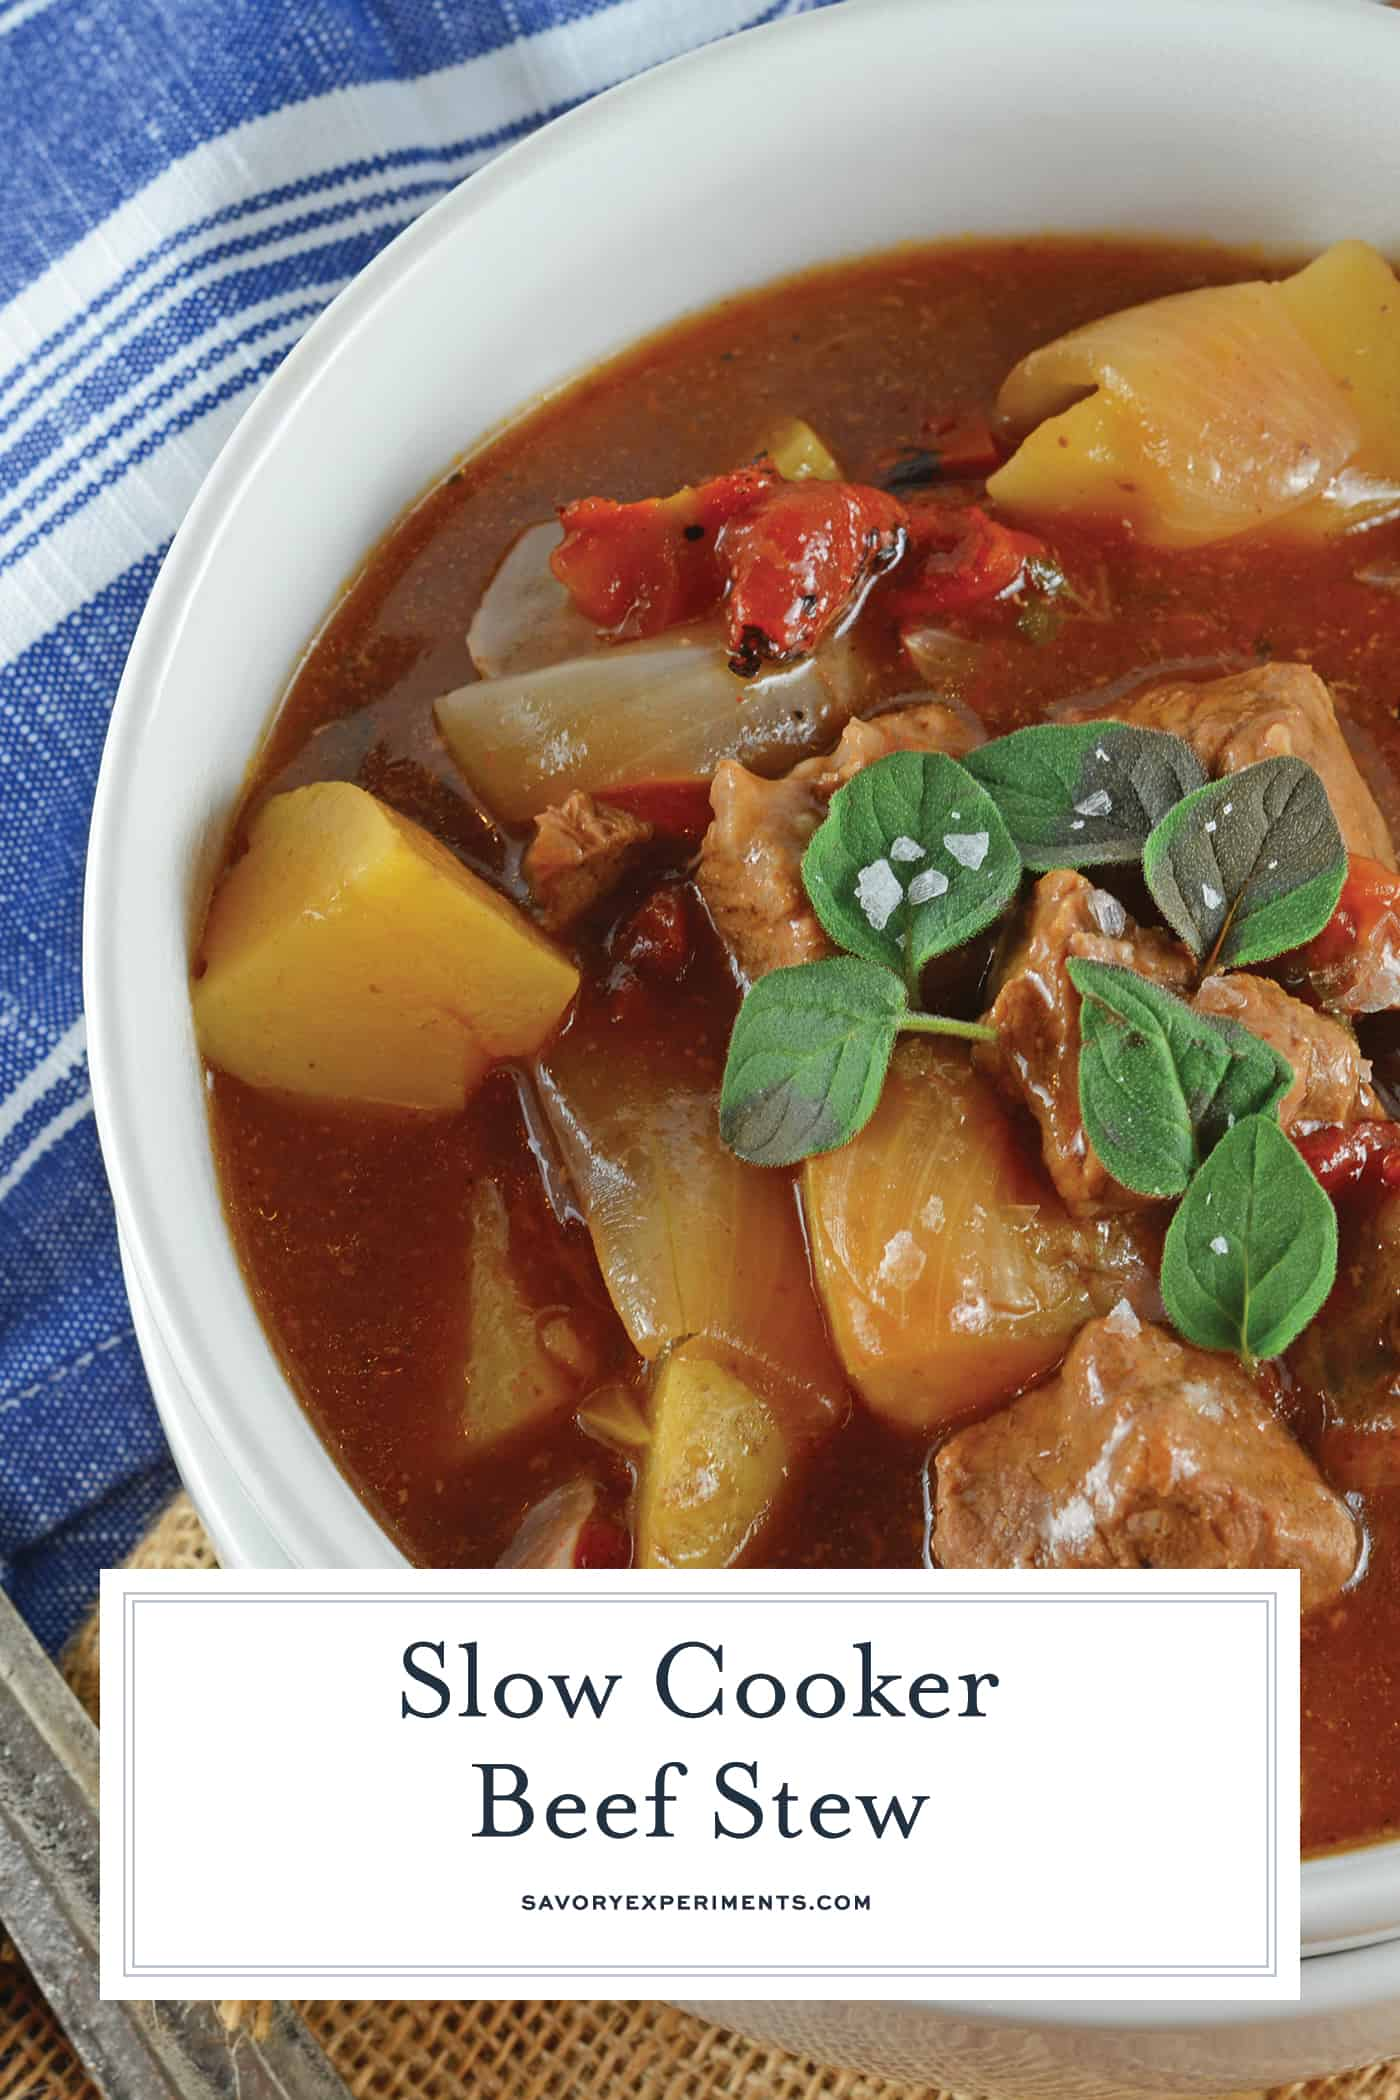 Slow Cooker Beef Stew is one of the best comfort foods to enjoy! It features tender beef, onions, potatoes, and fire roasted tomatoes in a rich herb stew! #crockpotbeefstew #slowcookerbeefstew www.savoryexperiments.com